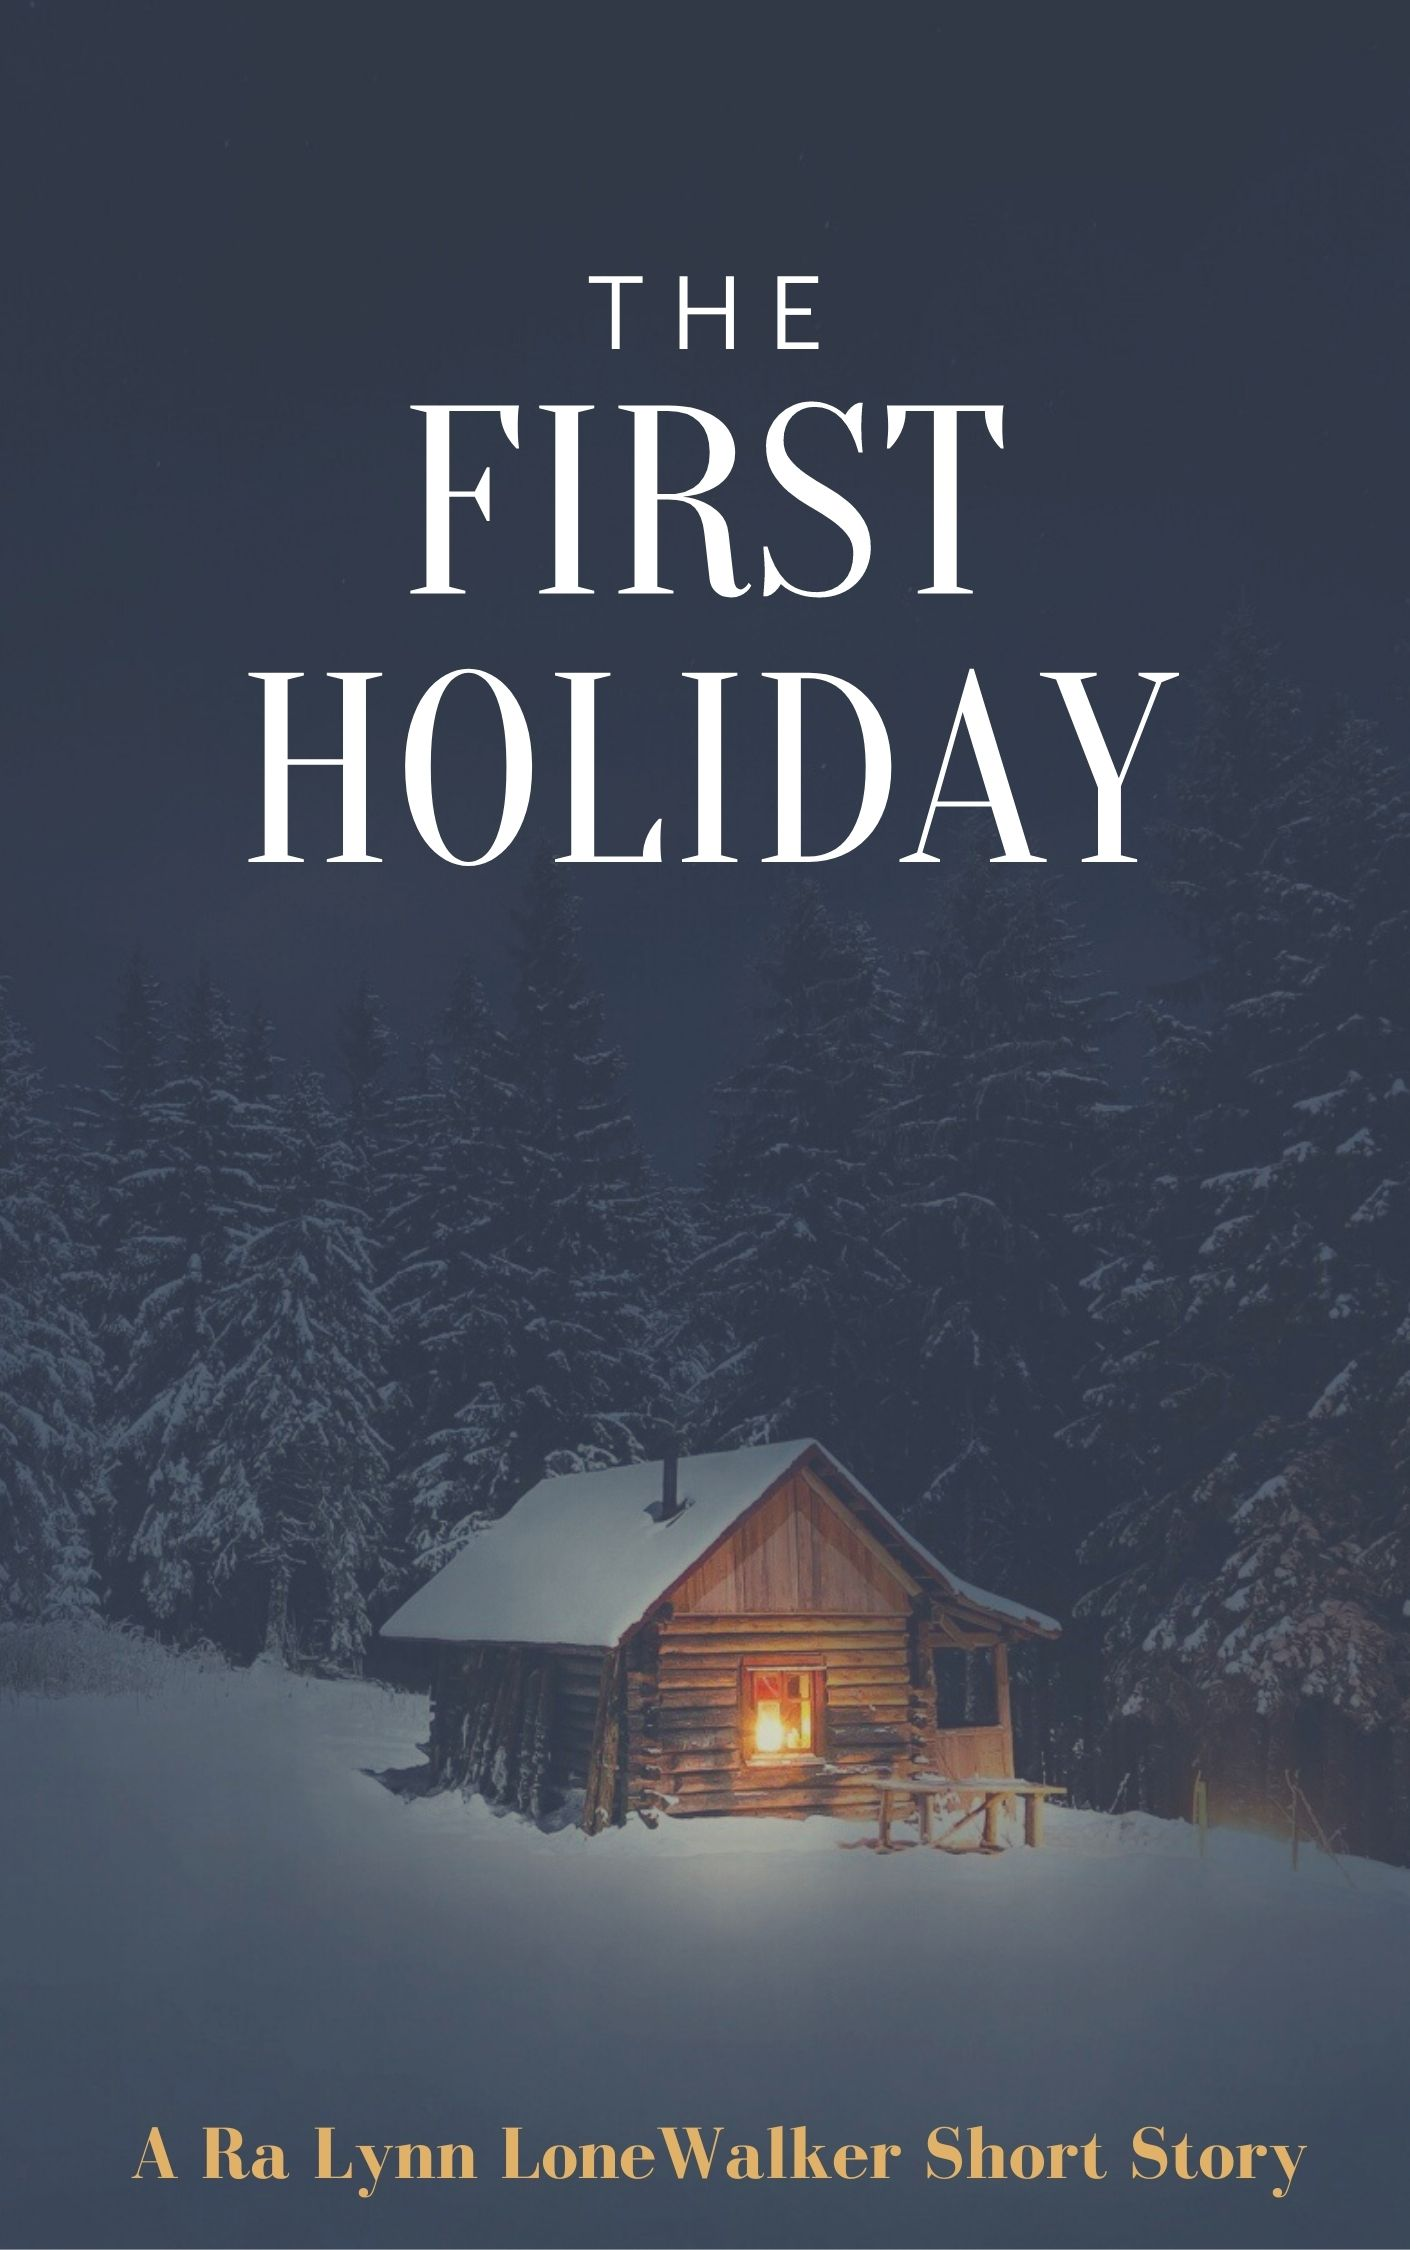 The First Holiday Short Story by Ra Lynn LoneWalker